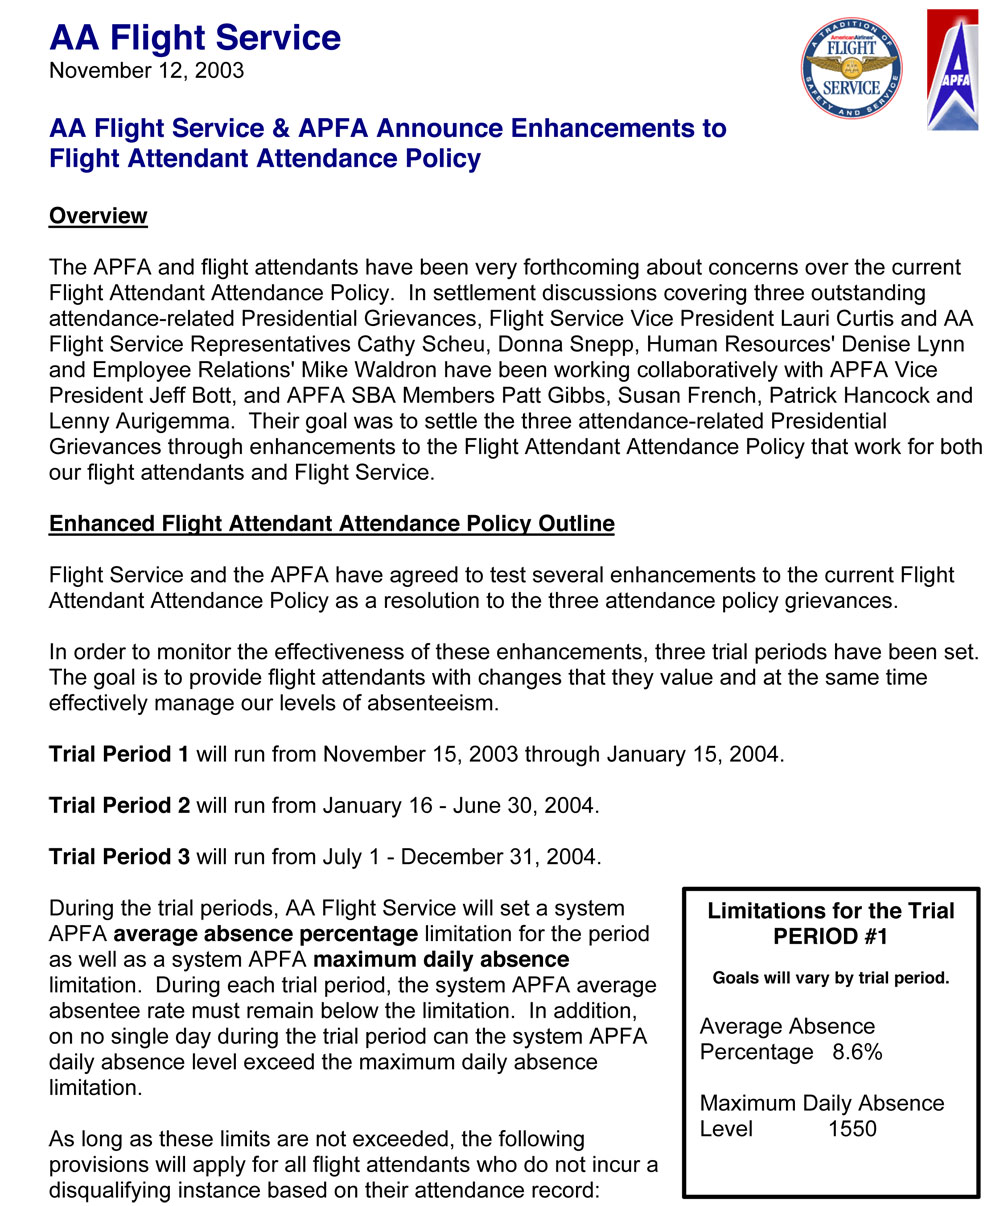 AA/APFA Enhance the Attendance Policy in the wake of the